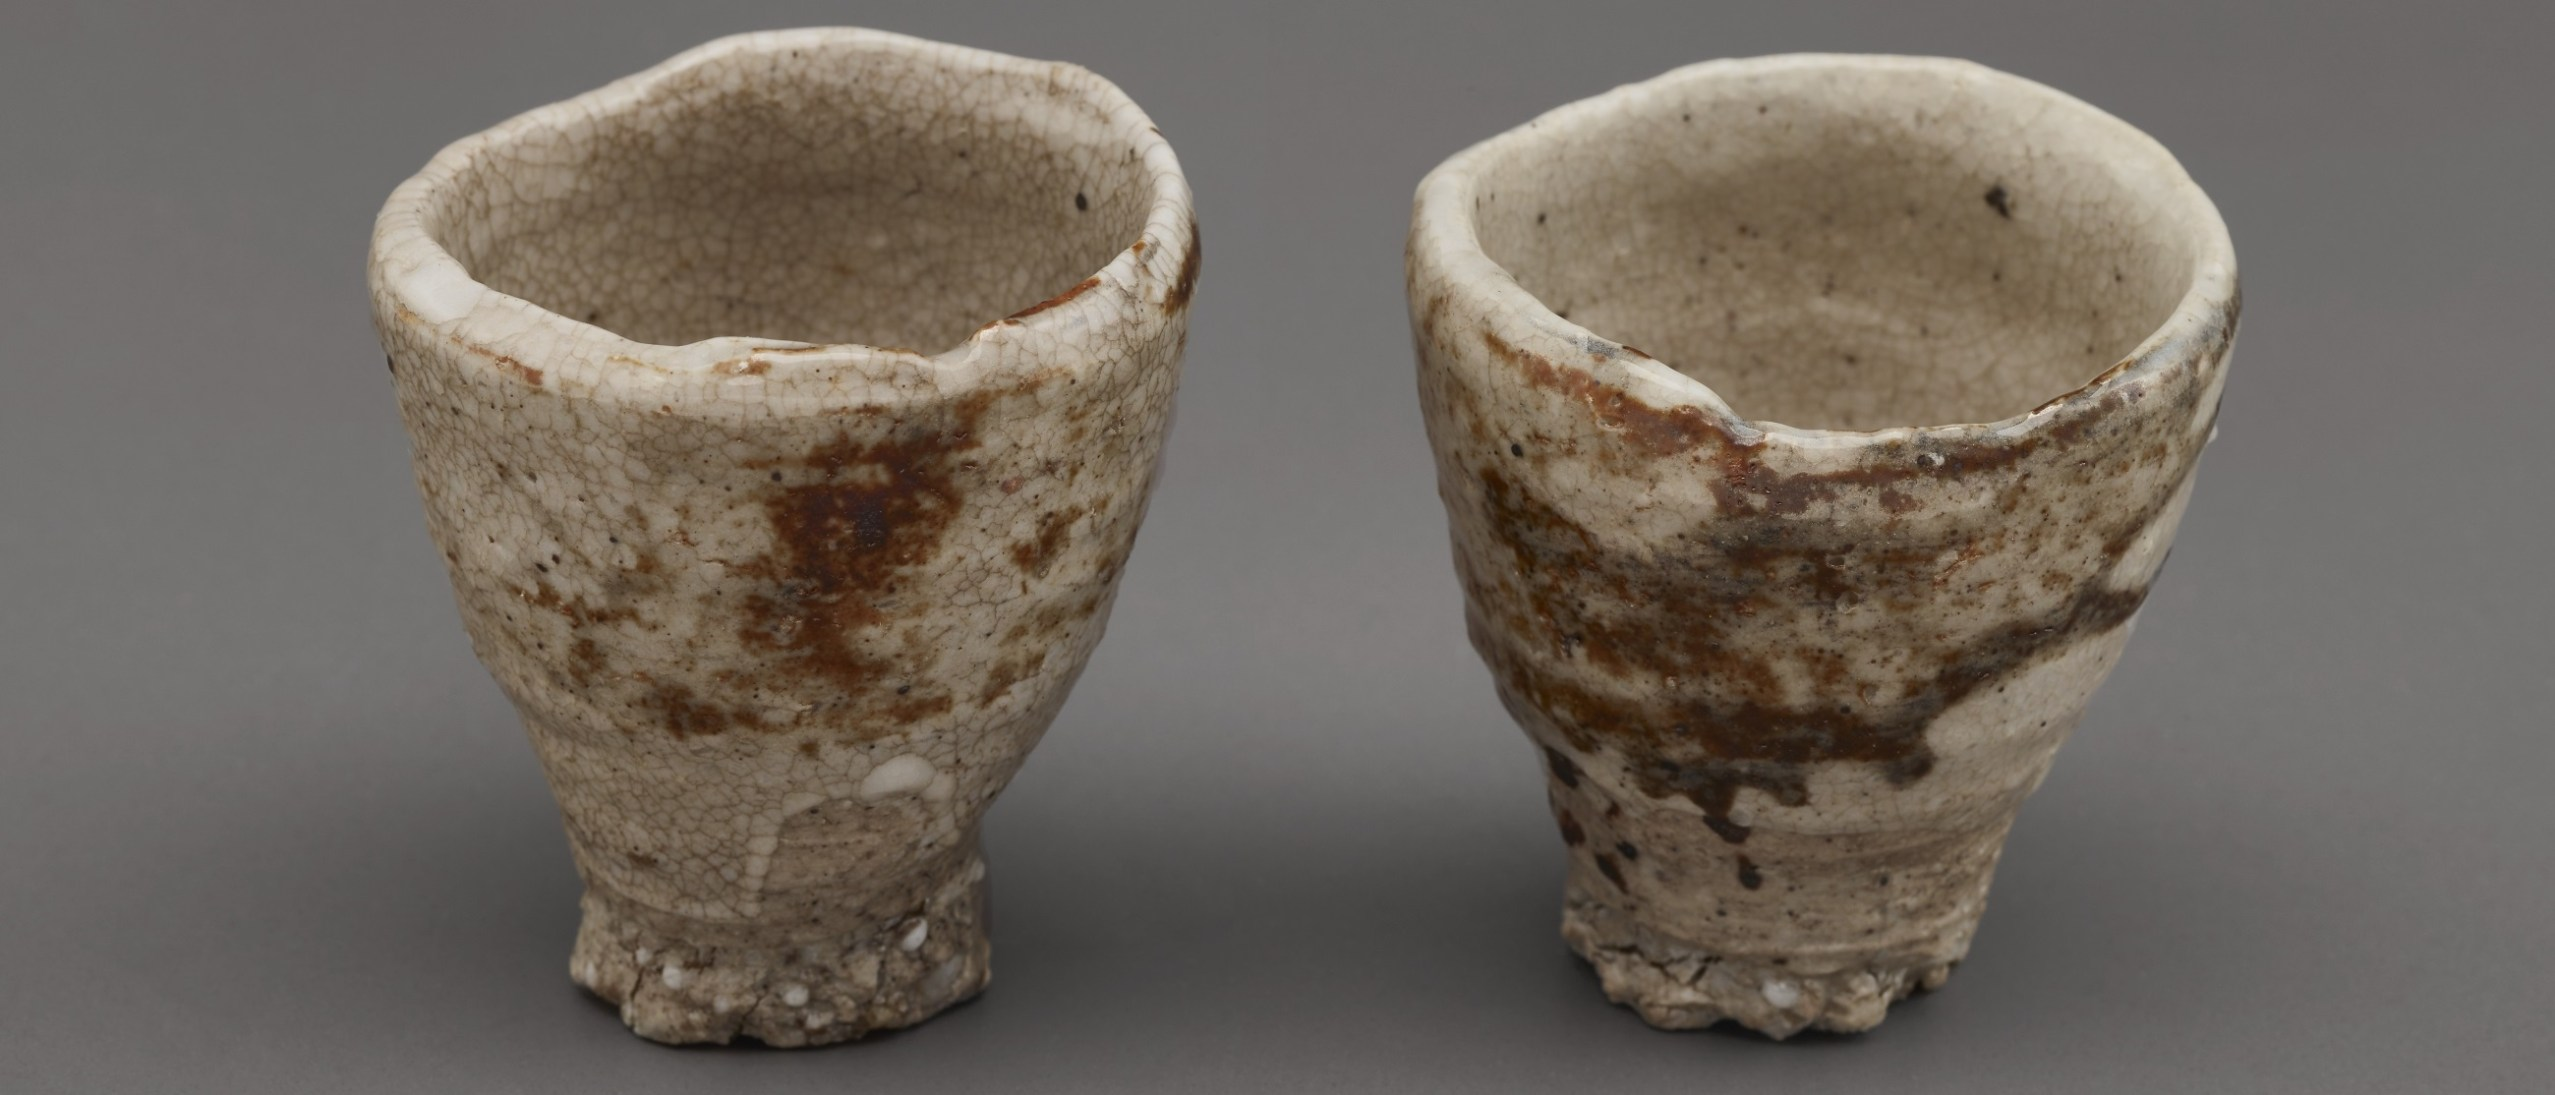 Photo of Two sake cups; Akiyama Yō (b. 1953); Japan, Kyoto, 1992; Porcelain with iron pigment under feldspathic glaze; Gift of Halsey and Alice North; Arthur M. Sackler Gallery S2017.17.1–2